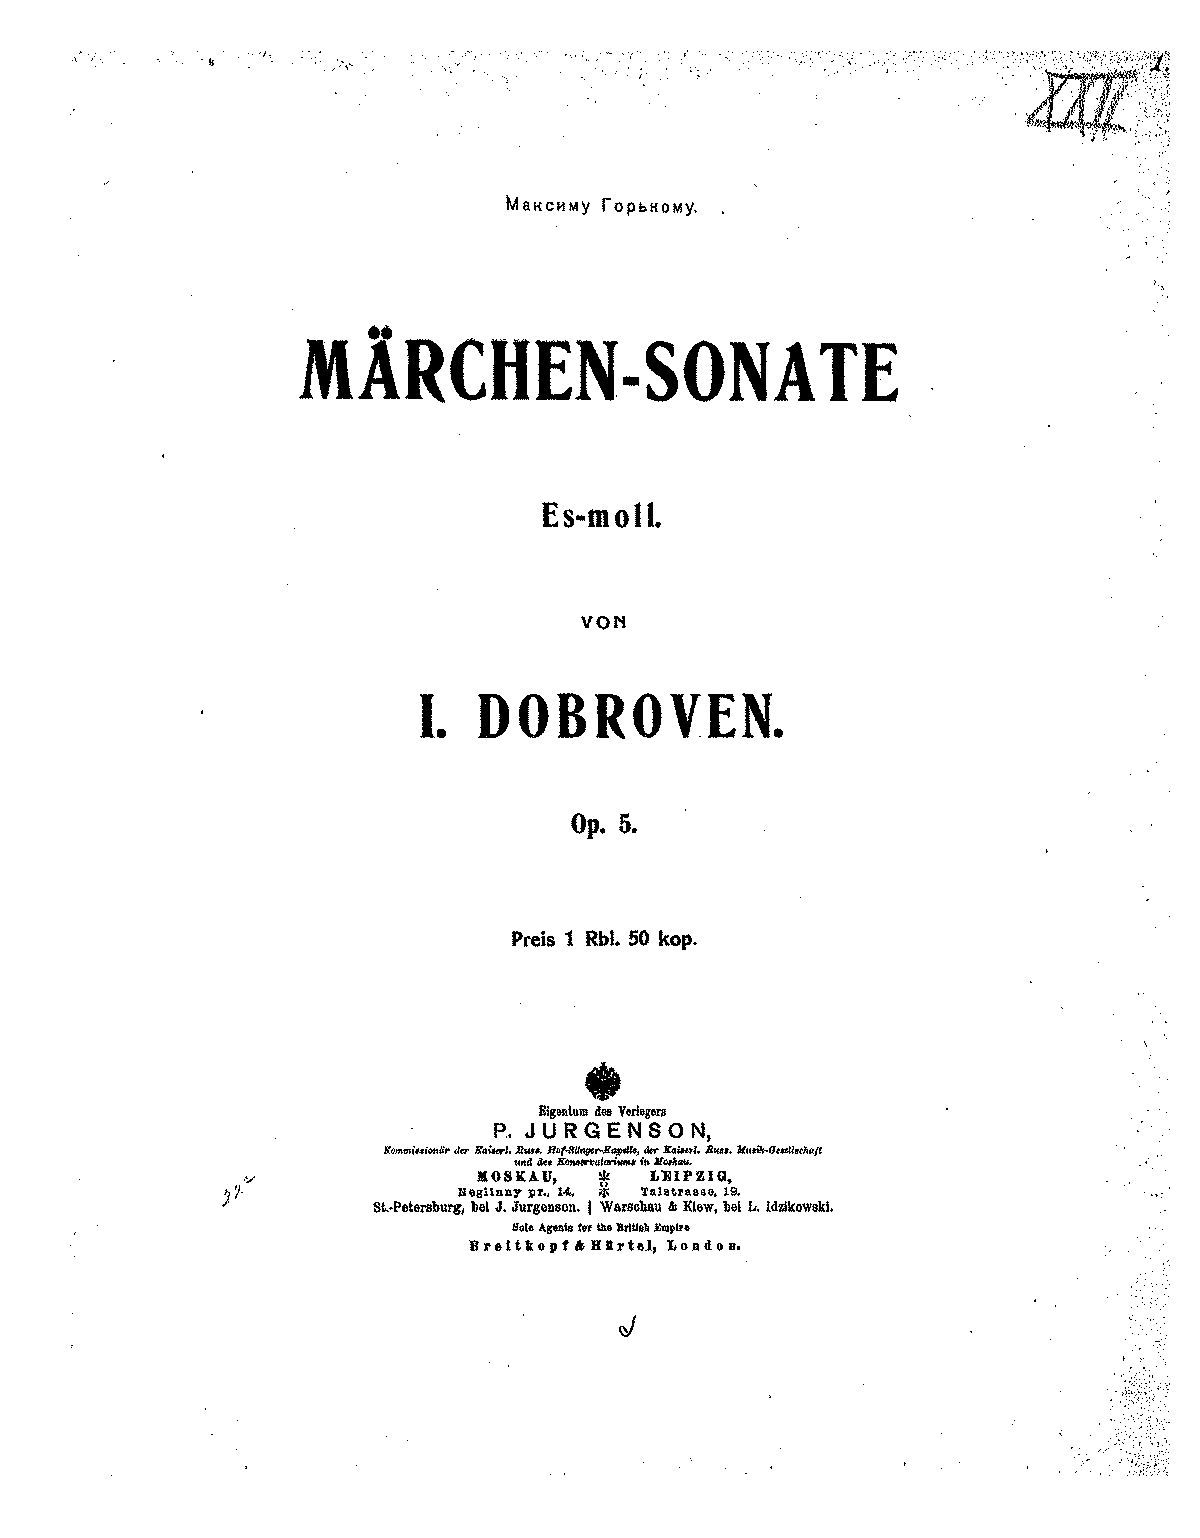 SIBLEY1802.23130.9b8d-dobroven march-sonate.pdf